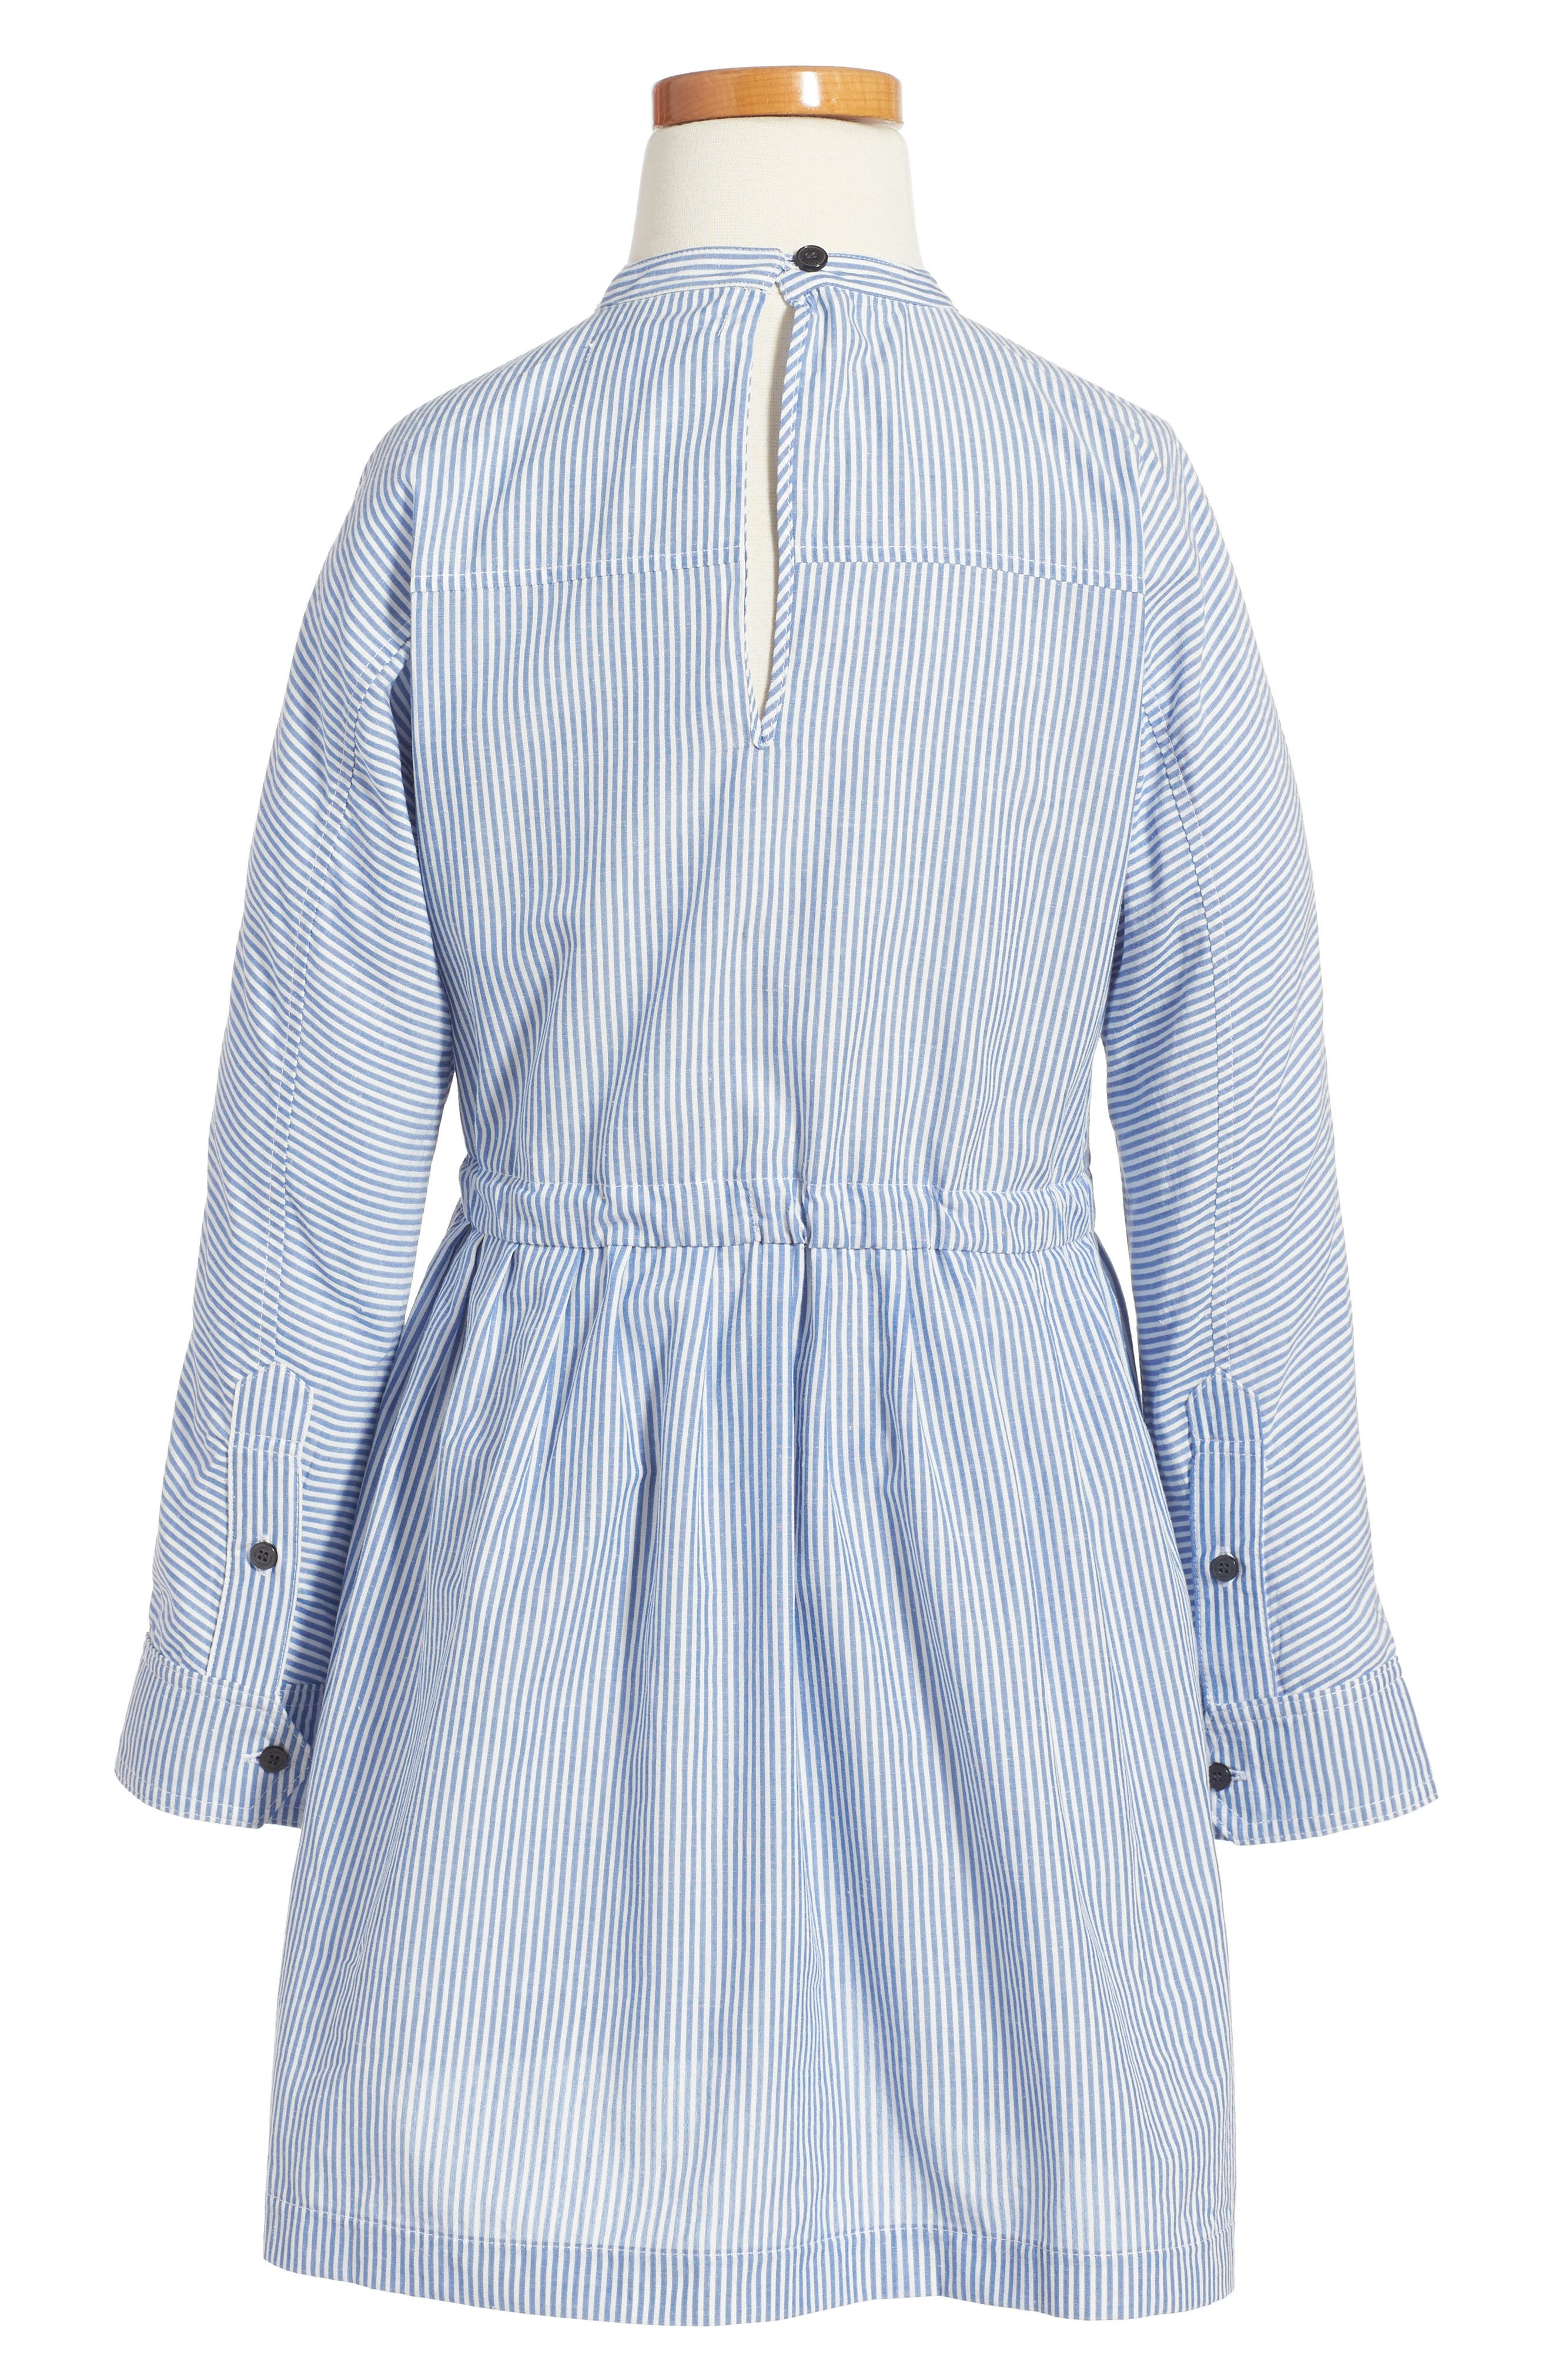 Alternate Image 2  - Burberry Cristy Patch Dress (Little Girls & Big Girls)